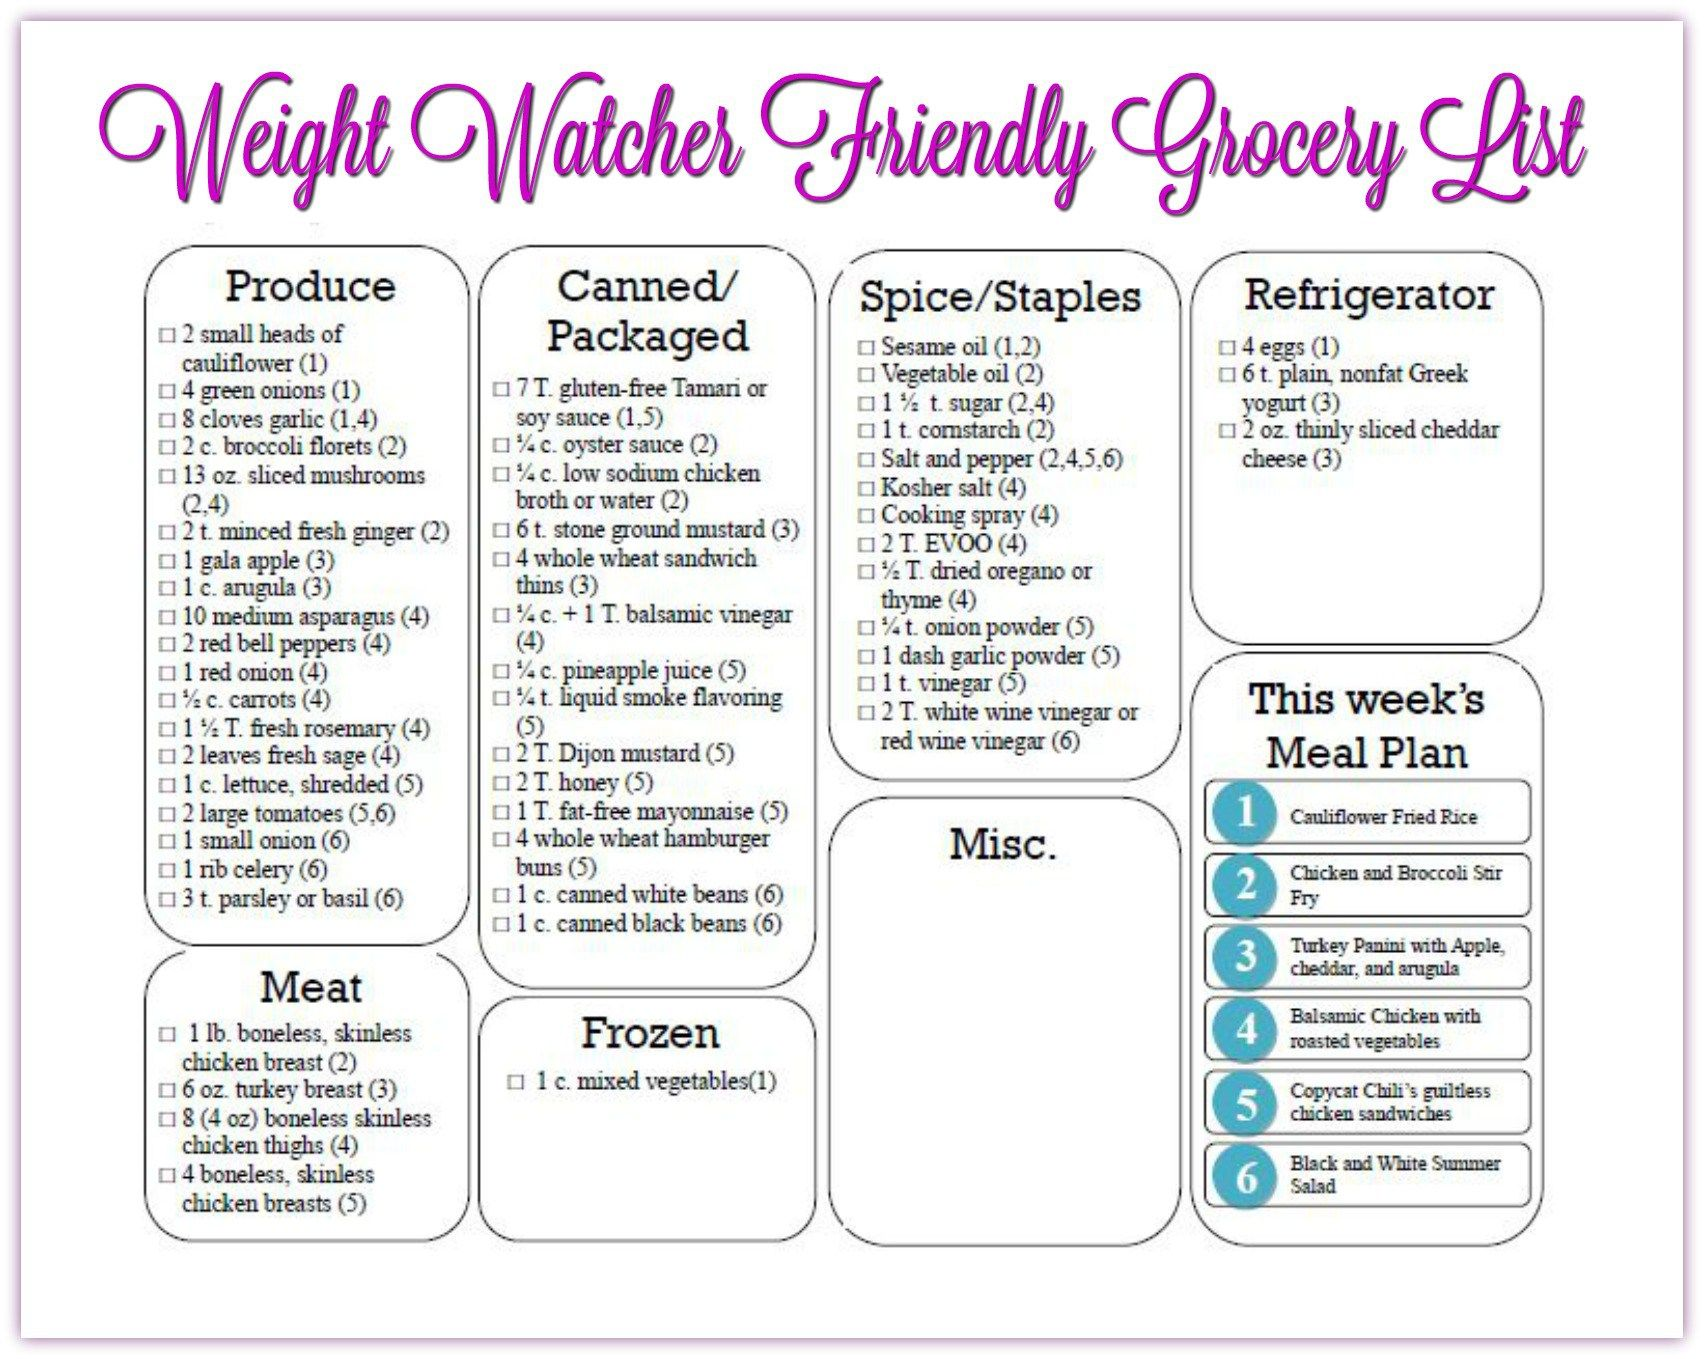 weight watcher meal plan with smart points 11 with old smart points